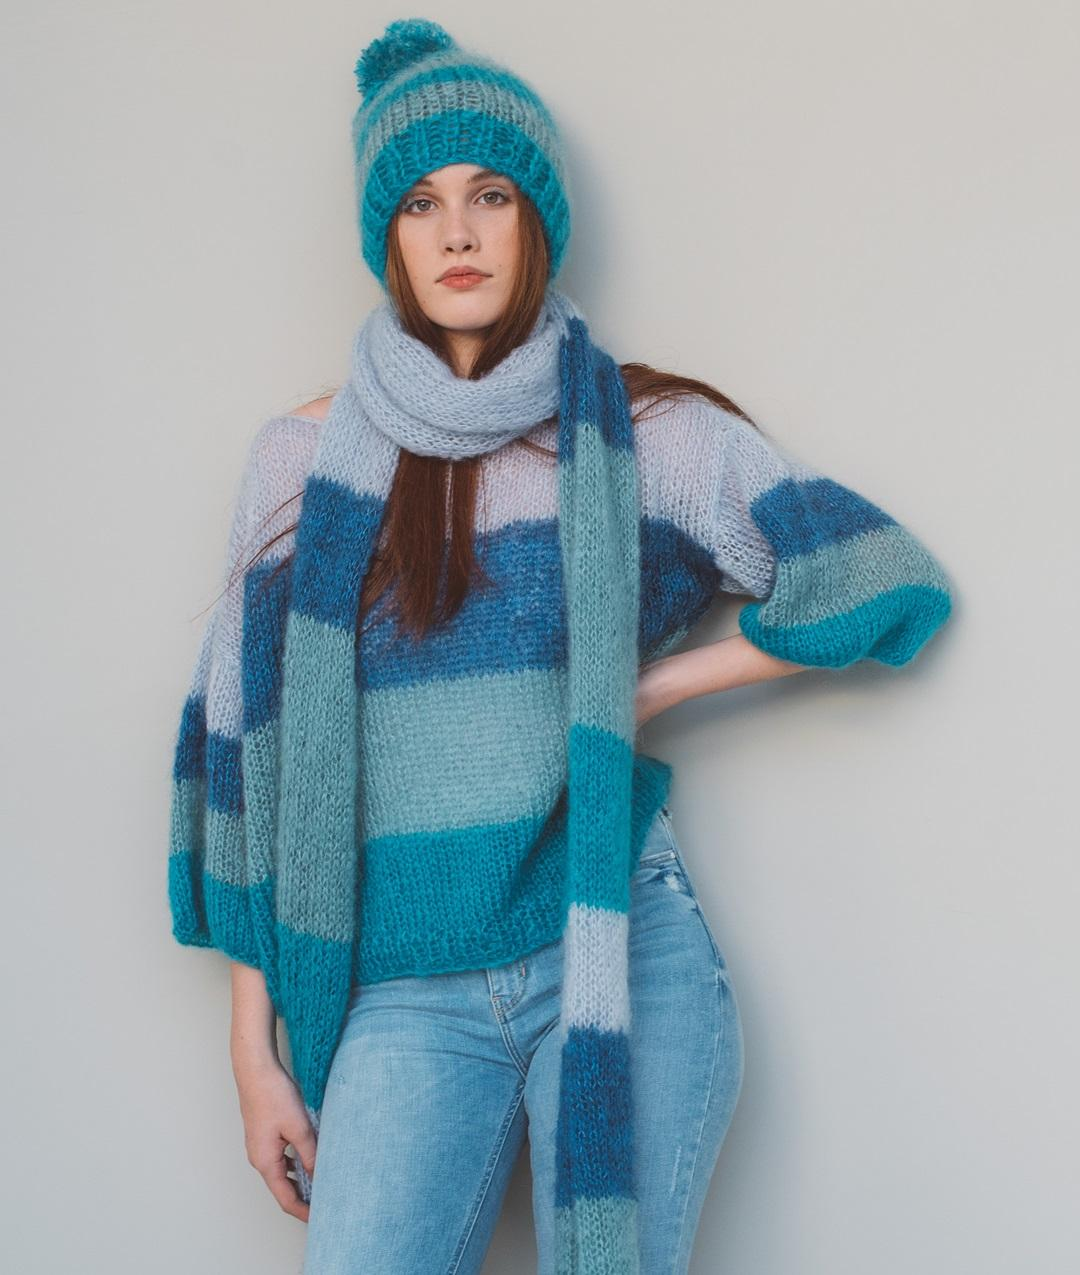 49663924df9c Kalamaja Scarf  Wool Knit Kit for Scarves and Snoods online + Pattern    Bettaknit